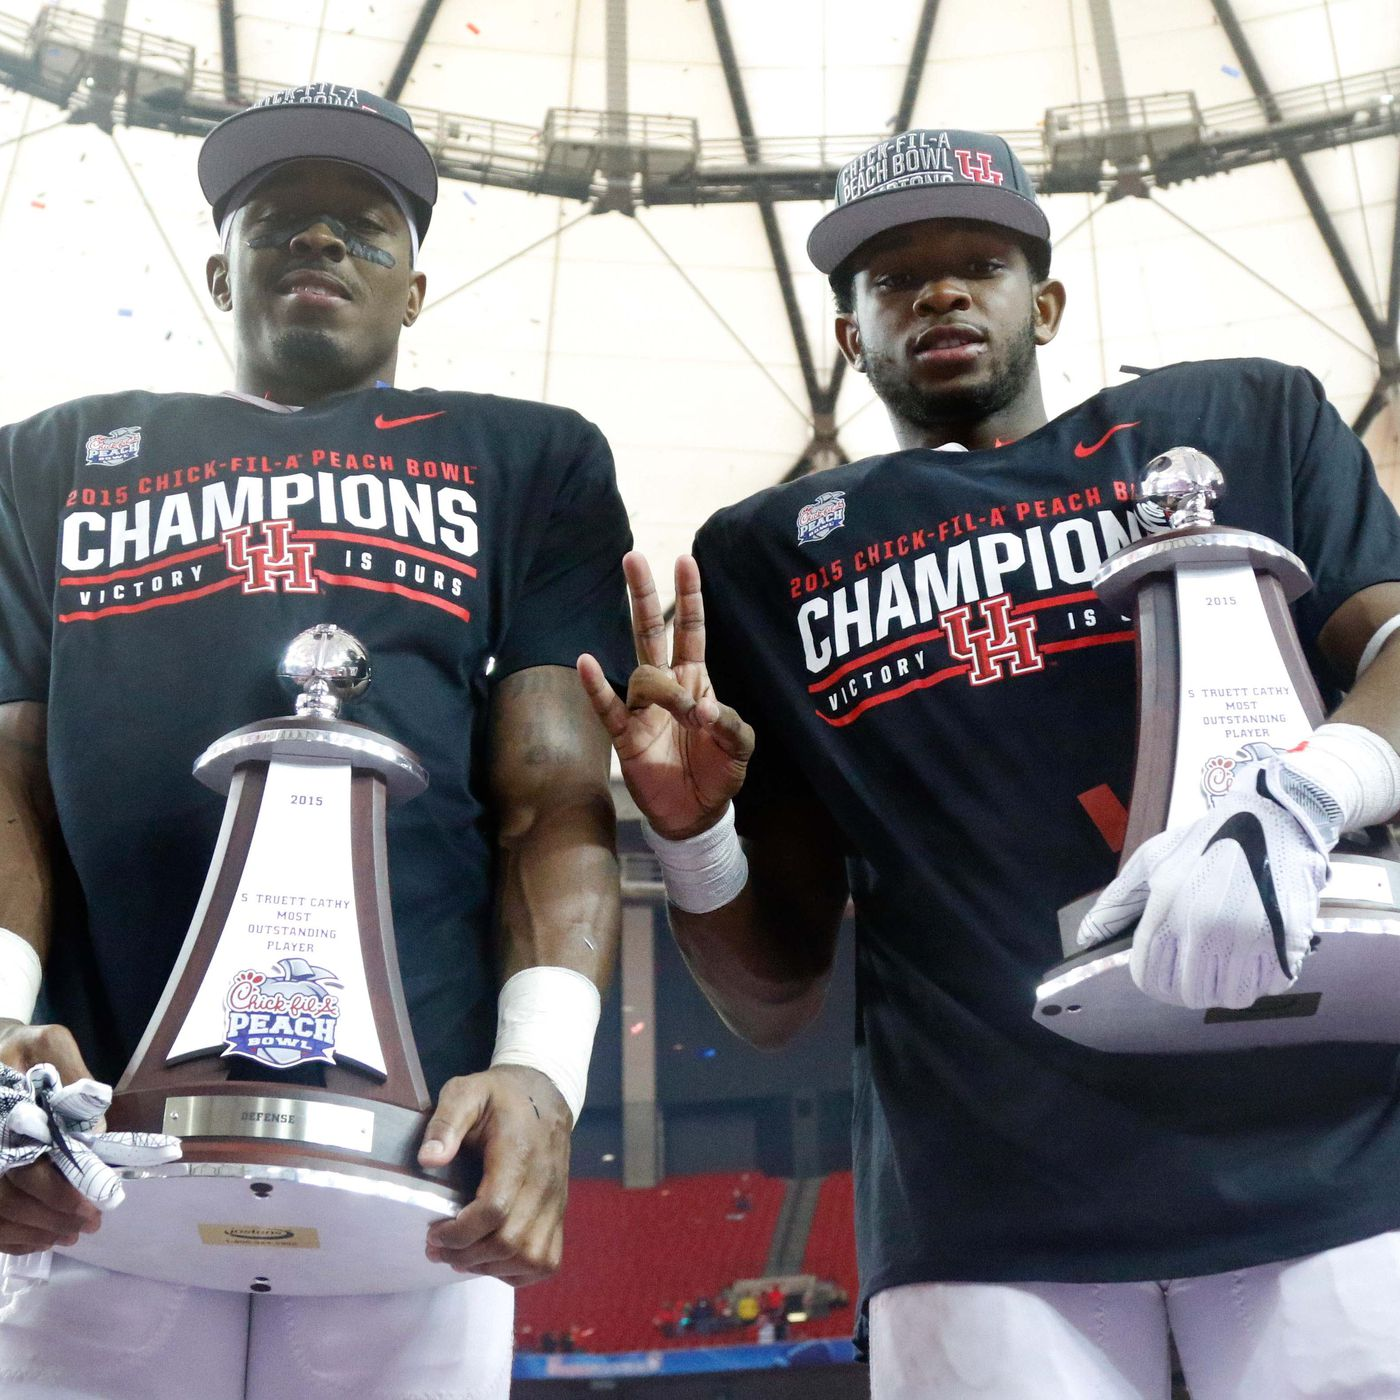 9aae7fc9a1a The Speculating Season  Where does UH rank in preseason polls  New ...